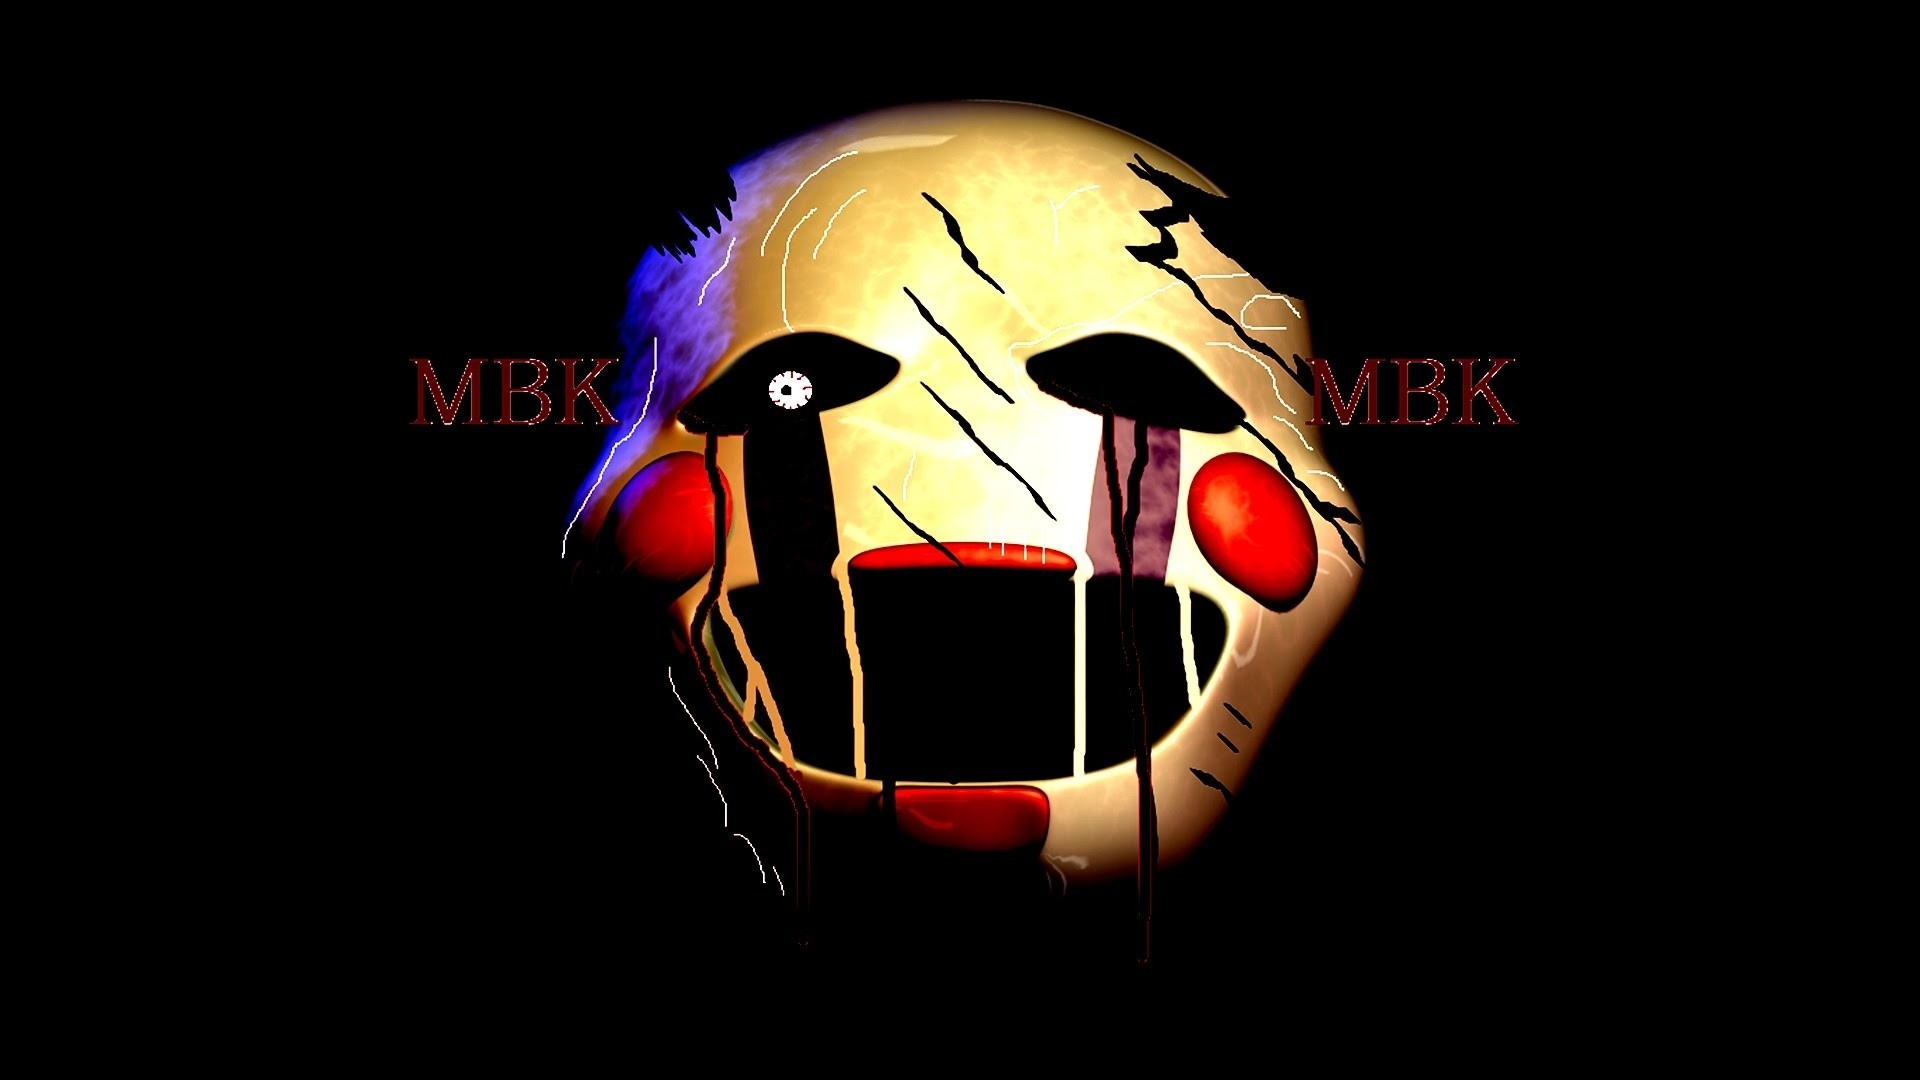 Fnaf, Horror Game, The Puppet, Five Nights At Freddys, Five Nights At